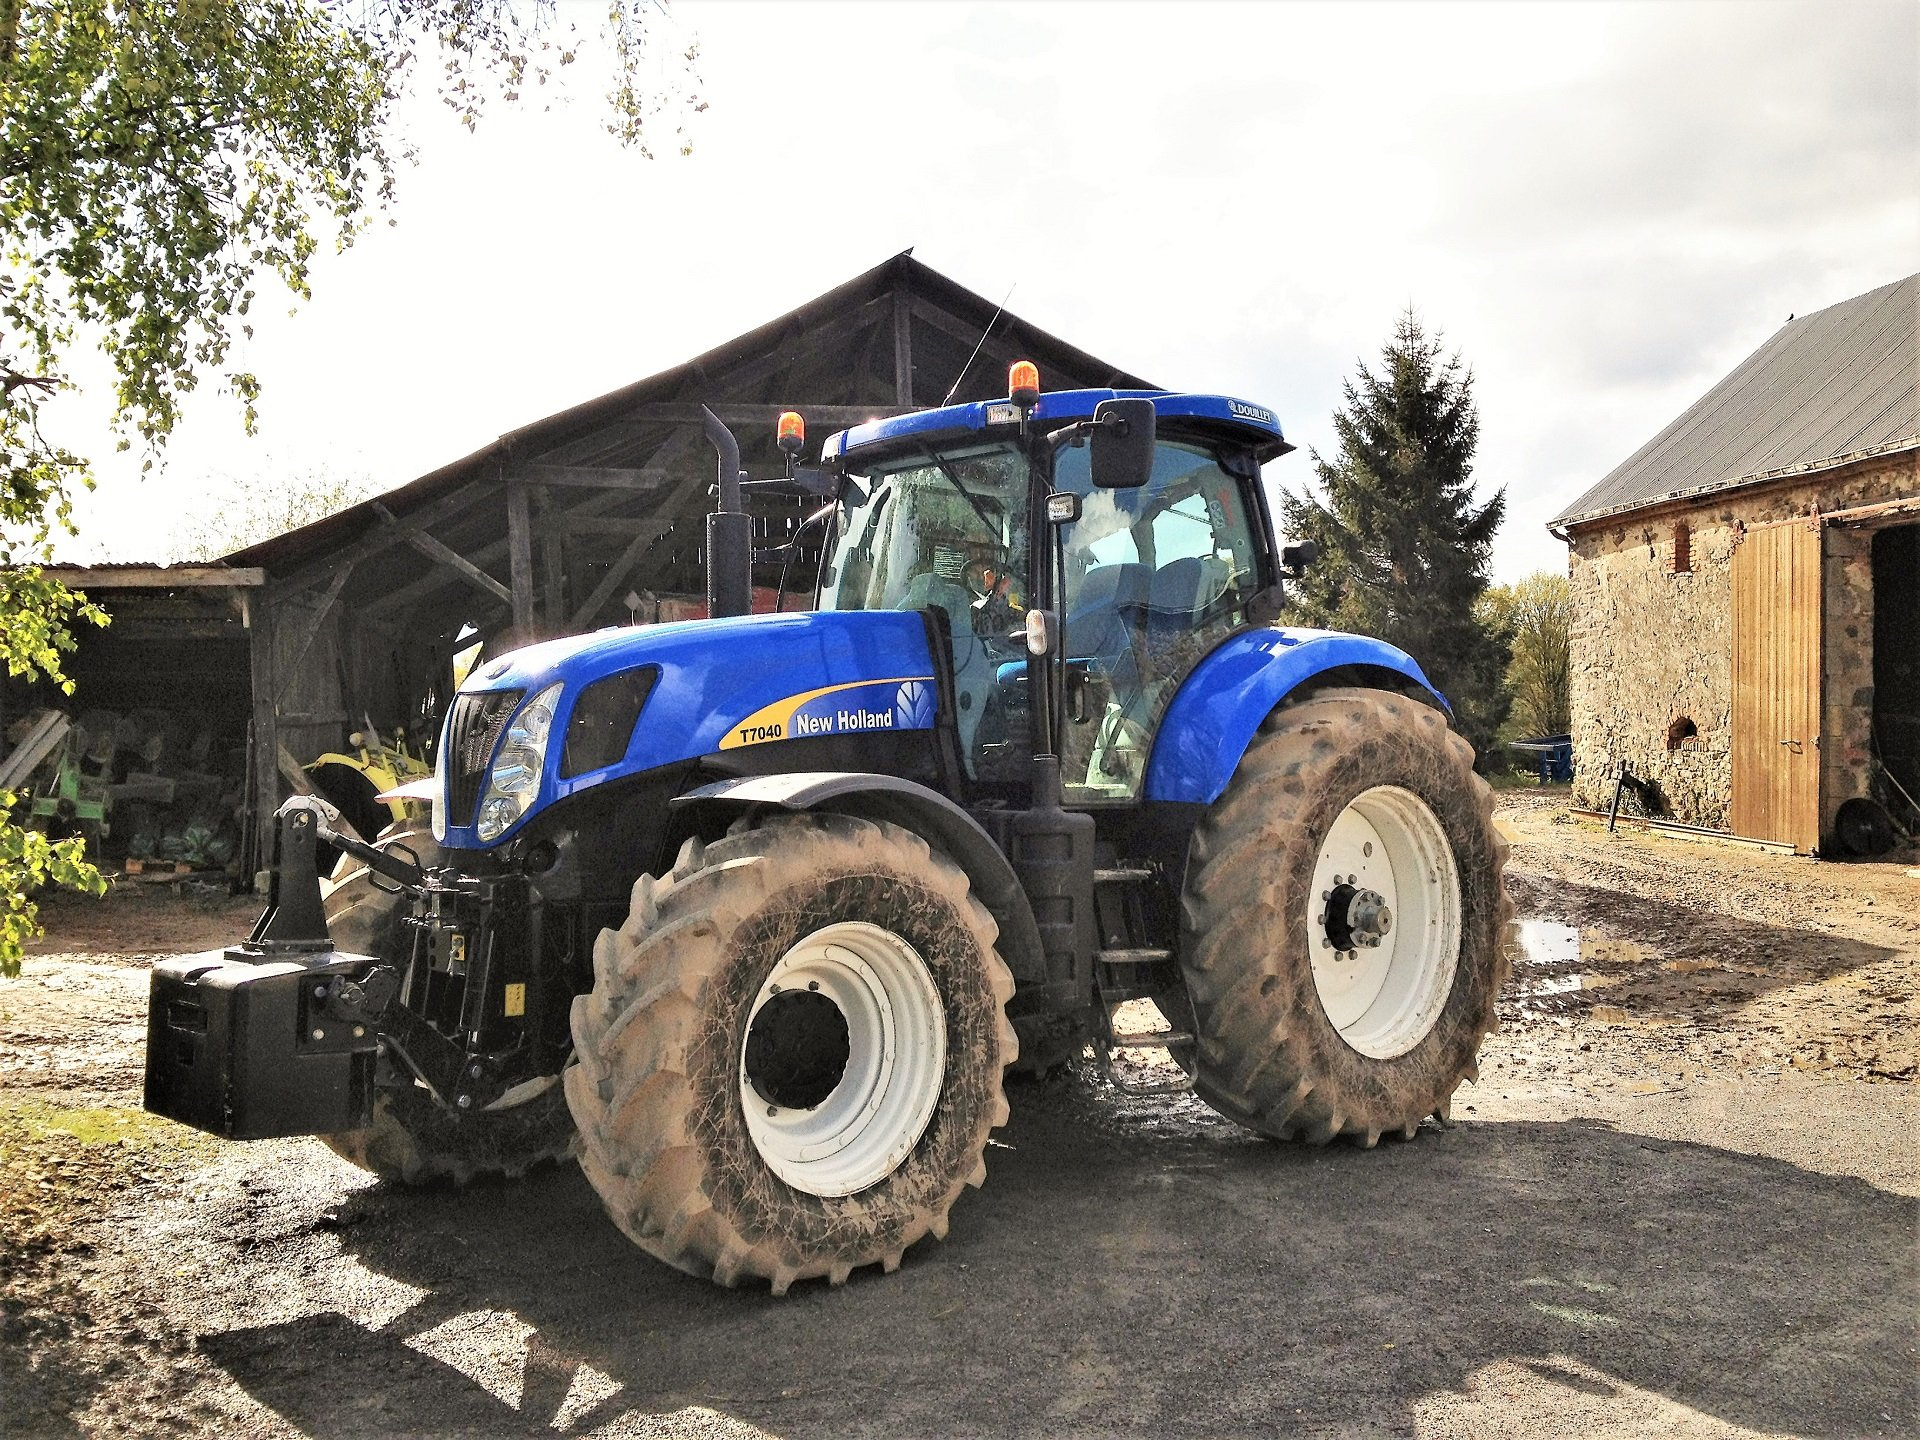 XBEE fuel technology New Holland tractor